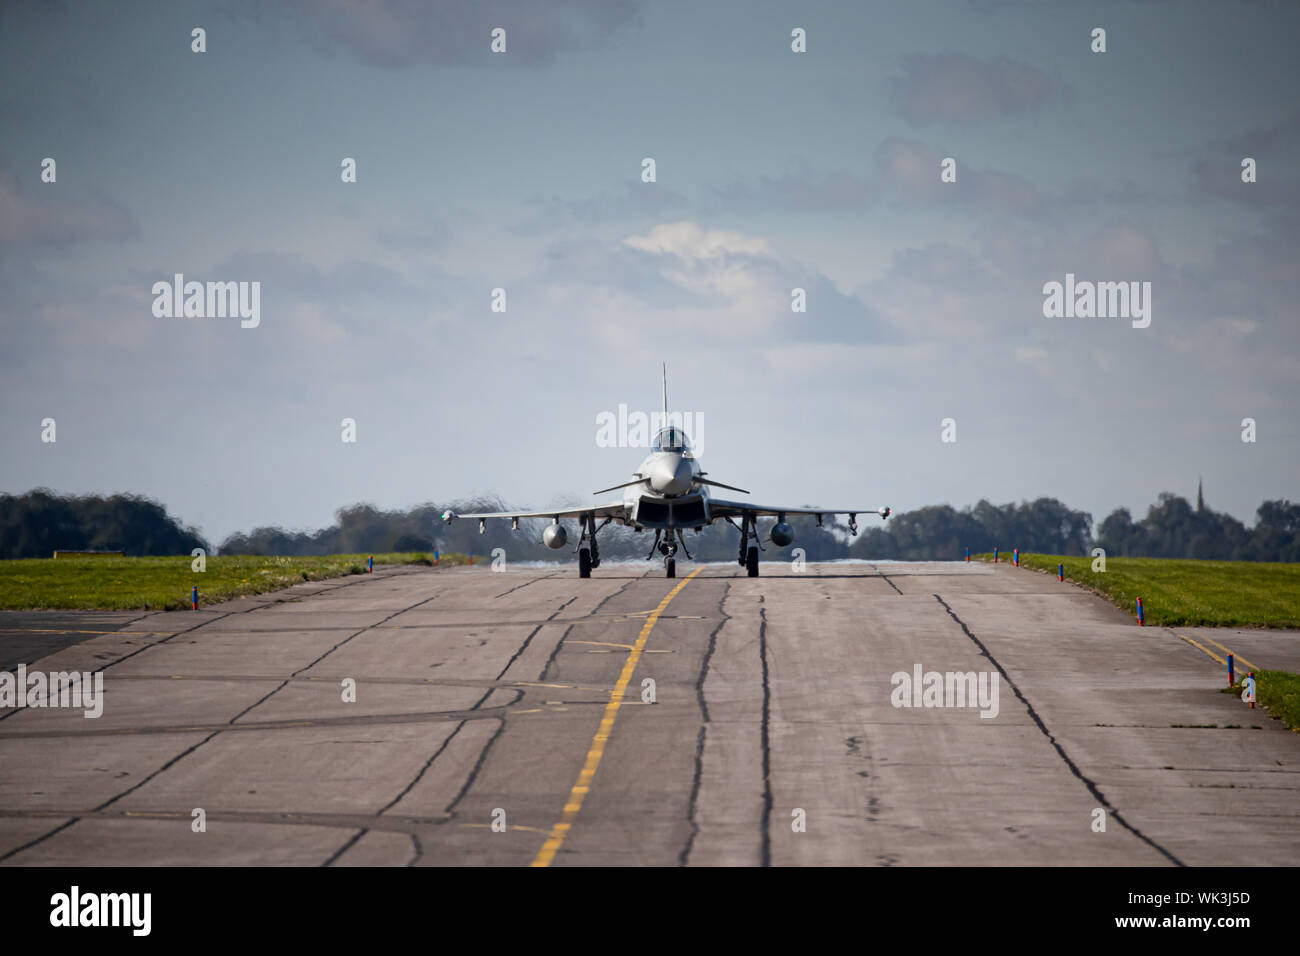 Italian Air Force Typhoons at RAF Waddington, Lincolnshire, UK. Taking part in Exercise Cobra Warrior 2019. Stock Photo